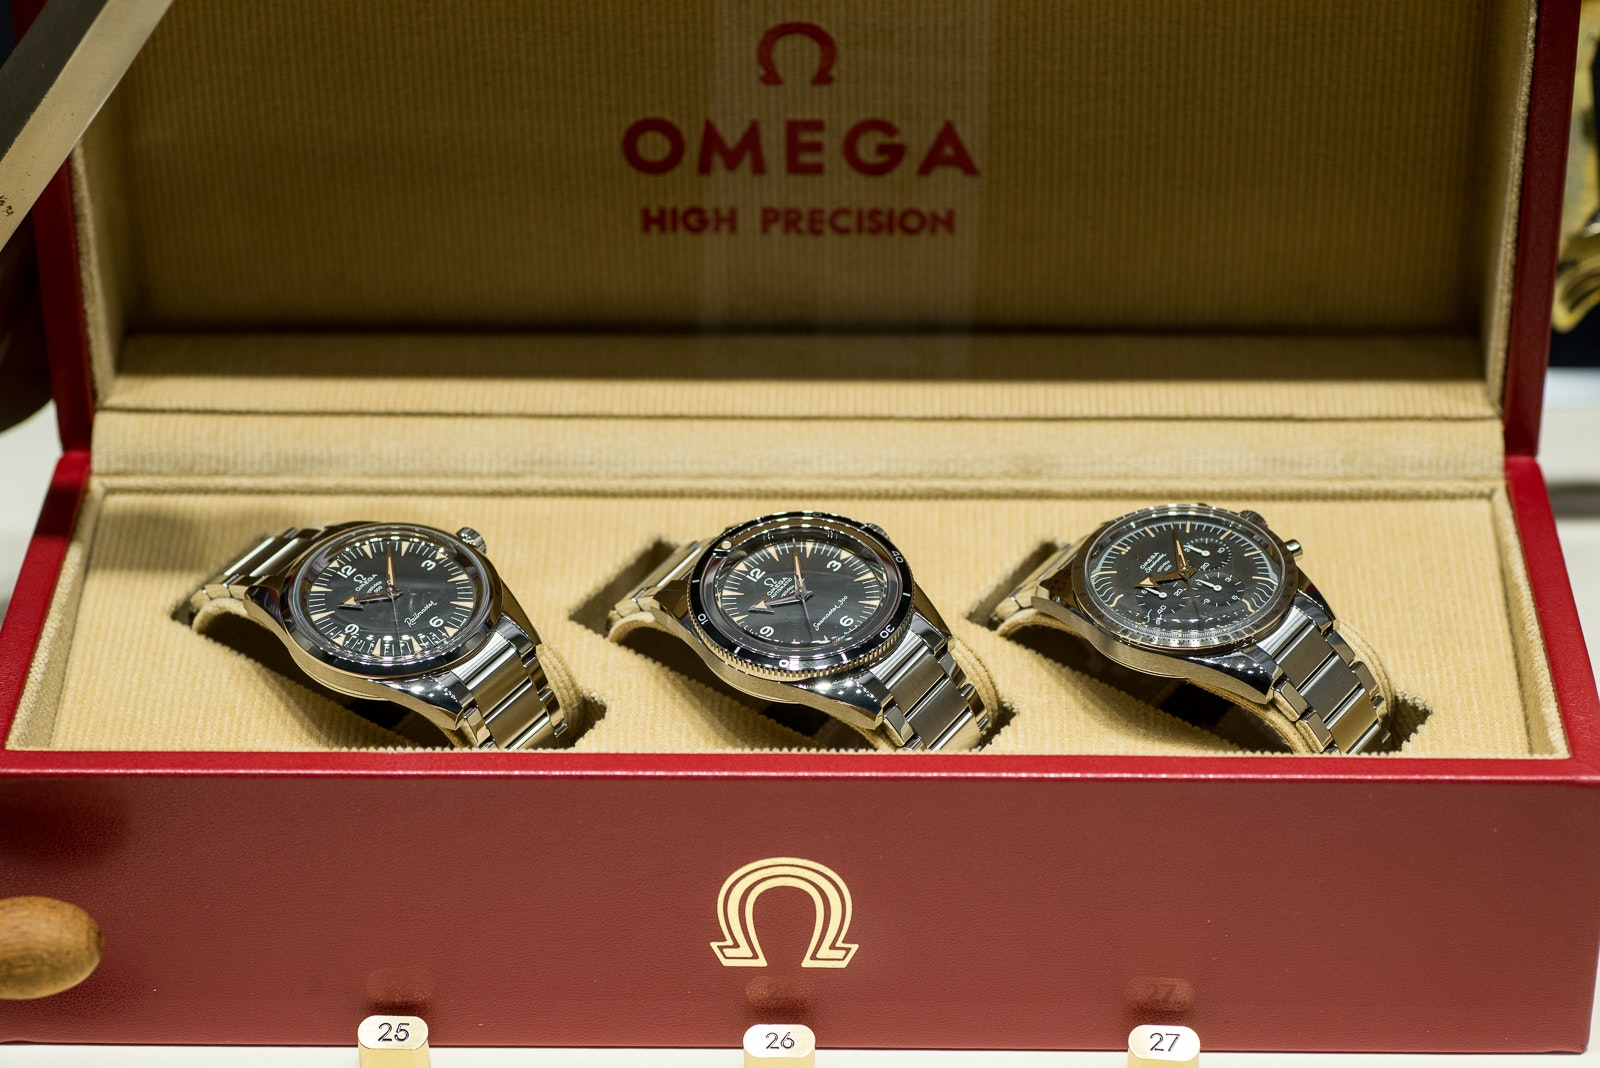 "Baselworld 2018 Omega predictions: A panda-dial Speedy,""Master Chronometer""-certified movements, and more"